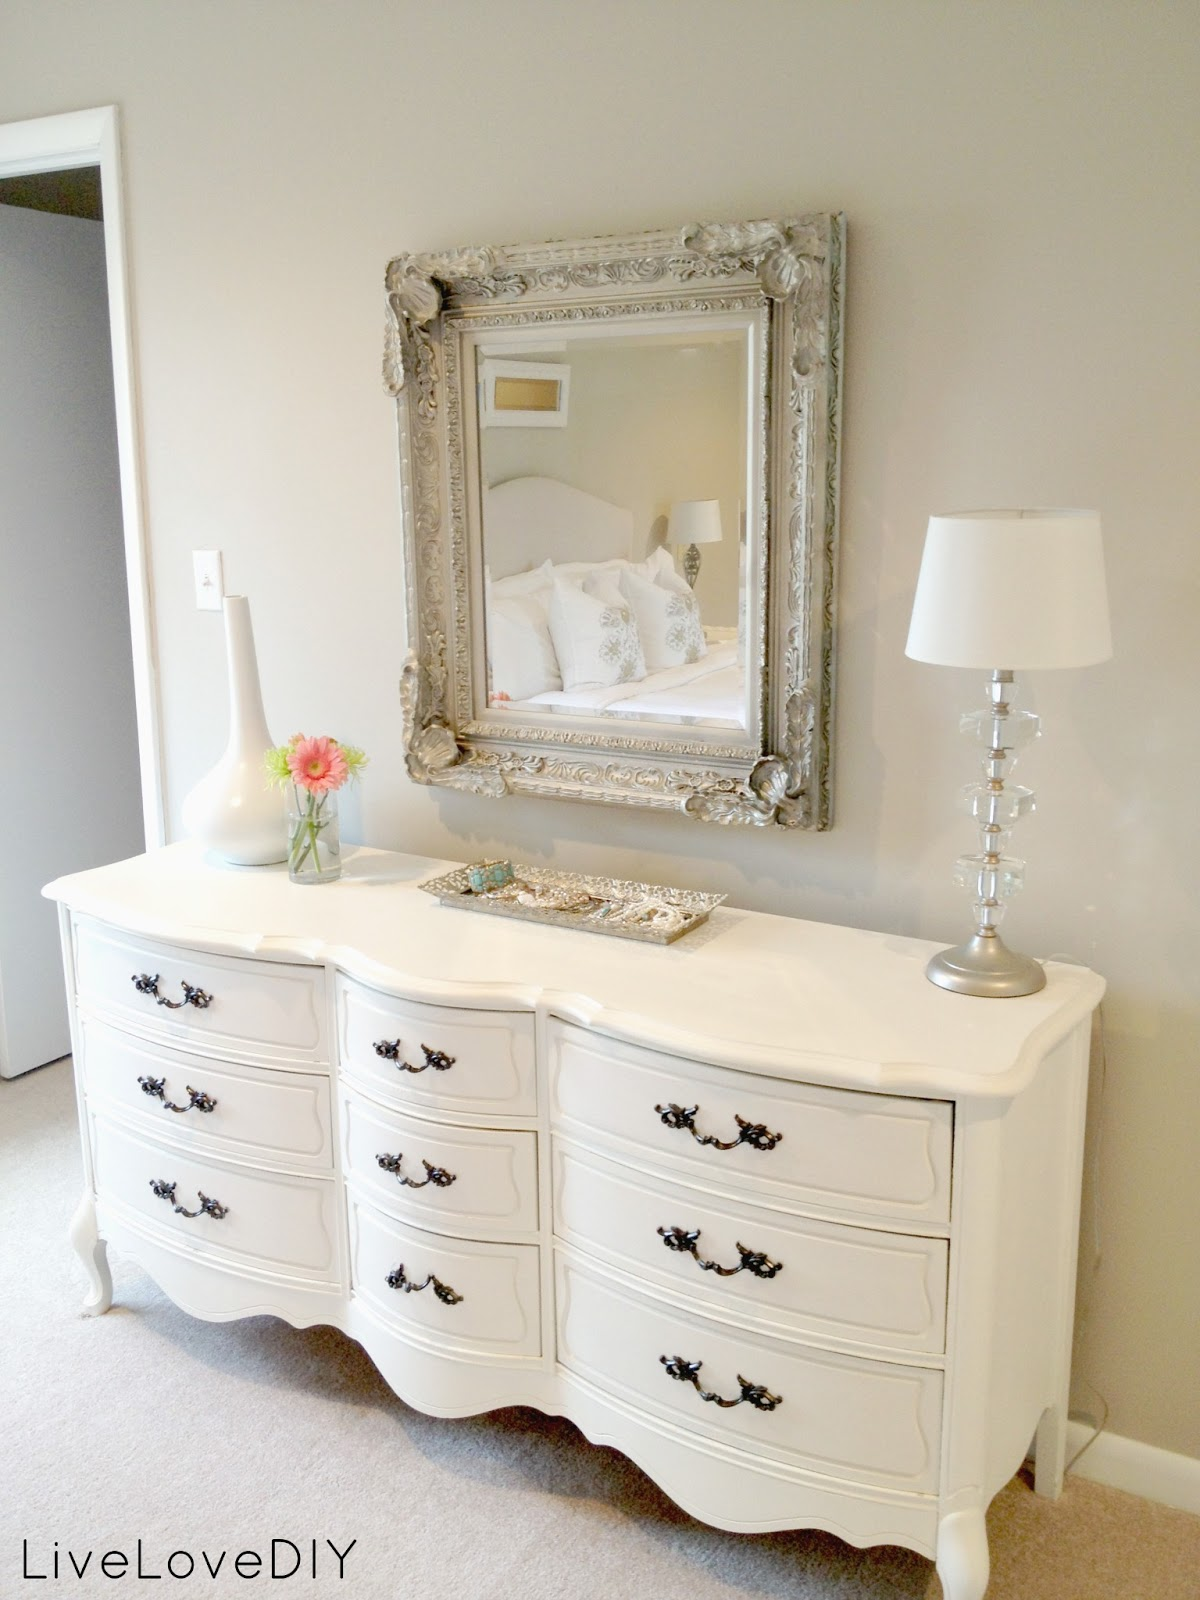 Livelovediy master bedroom updates Ideas to decorate master bedroom dresser